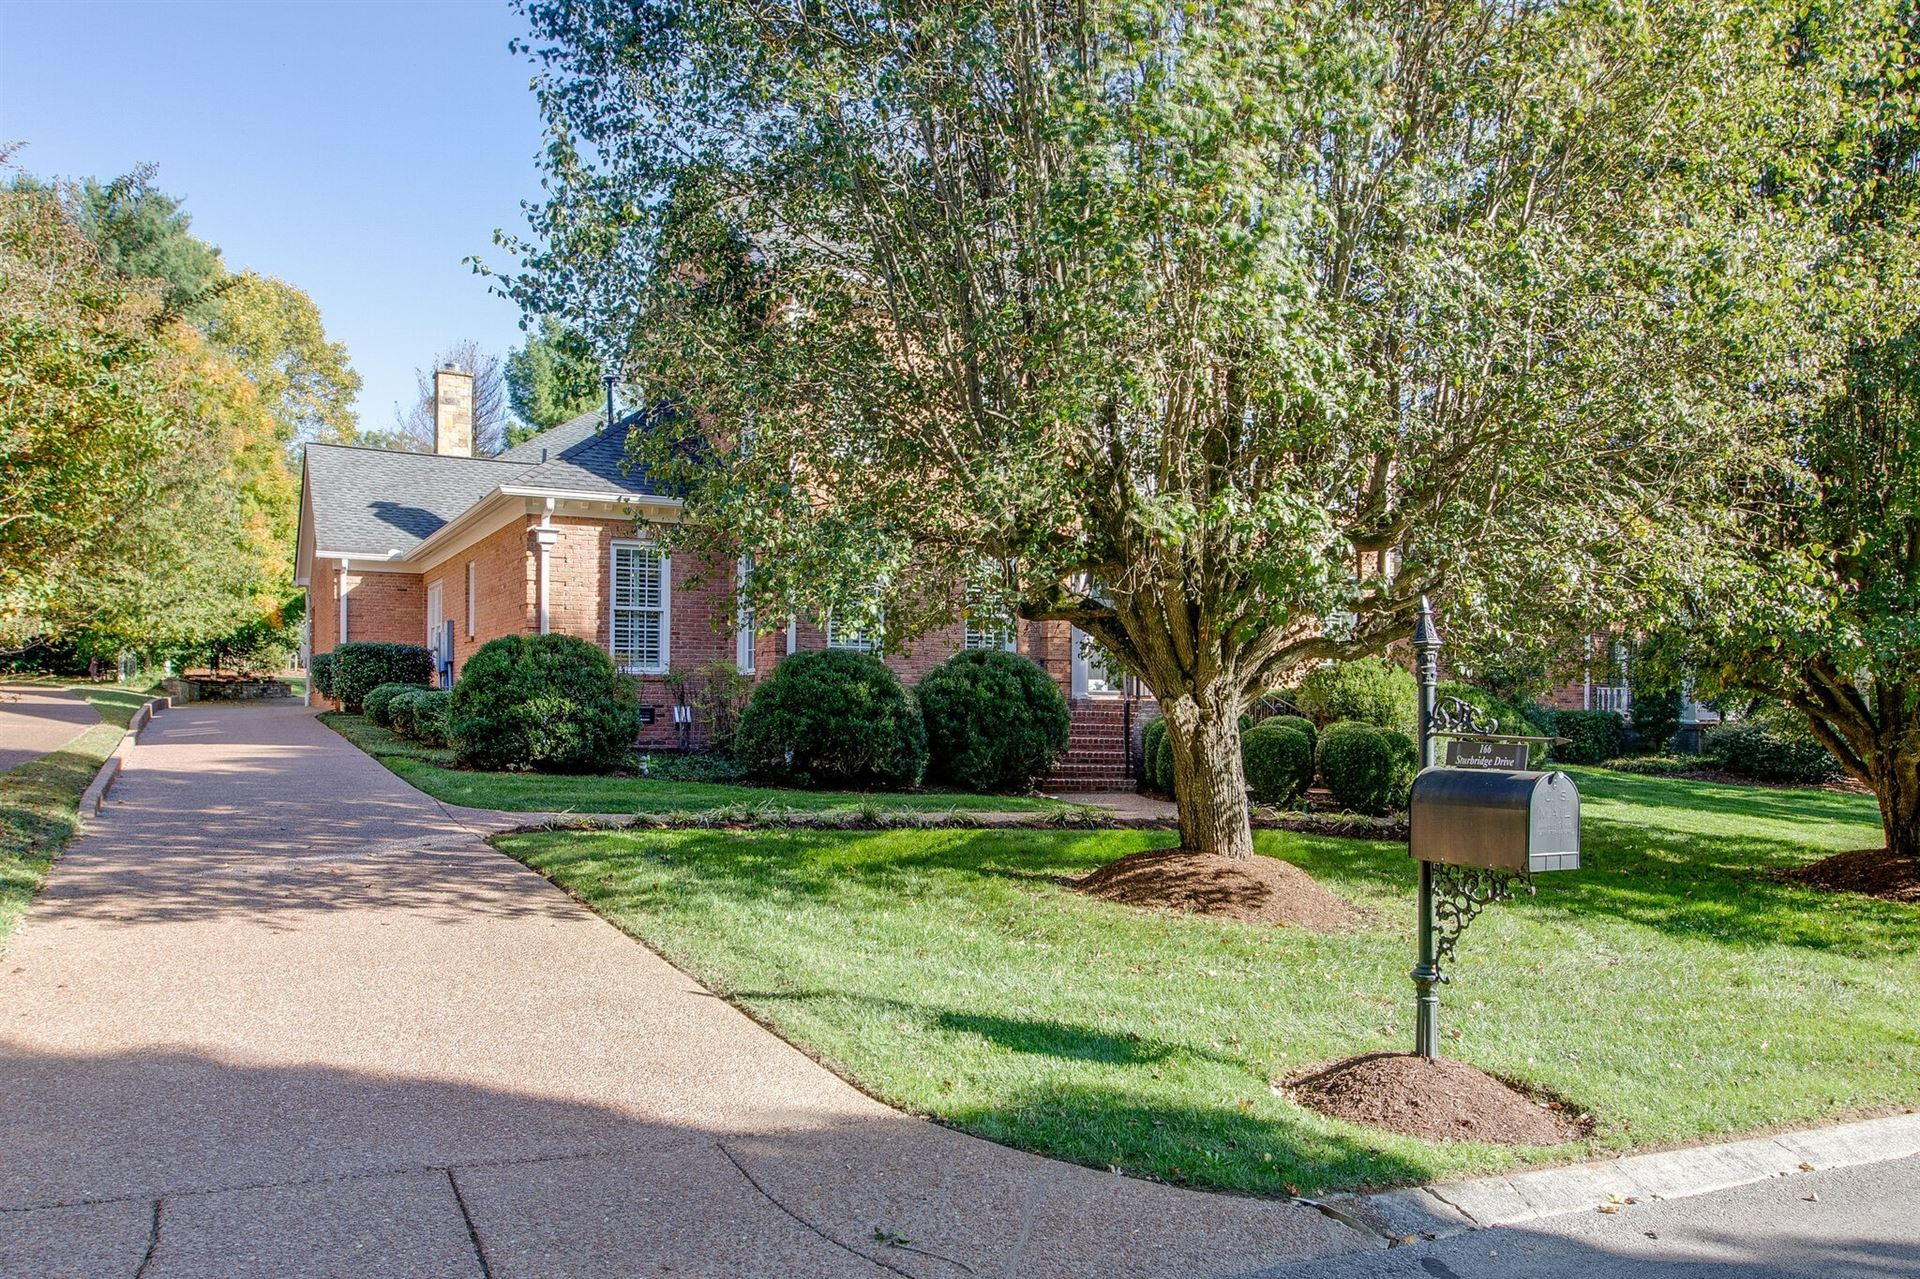 Photo of 166 Sturbridge Dr, Franklin, TN 37064 (MLS # 2209883)